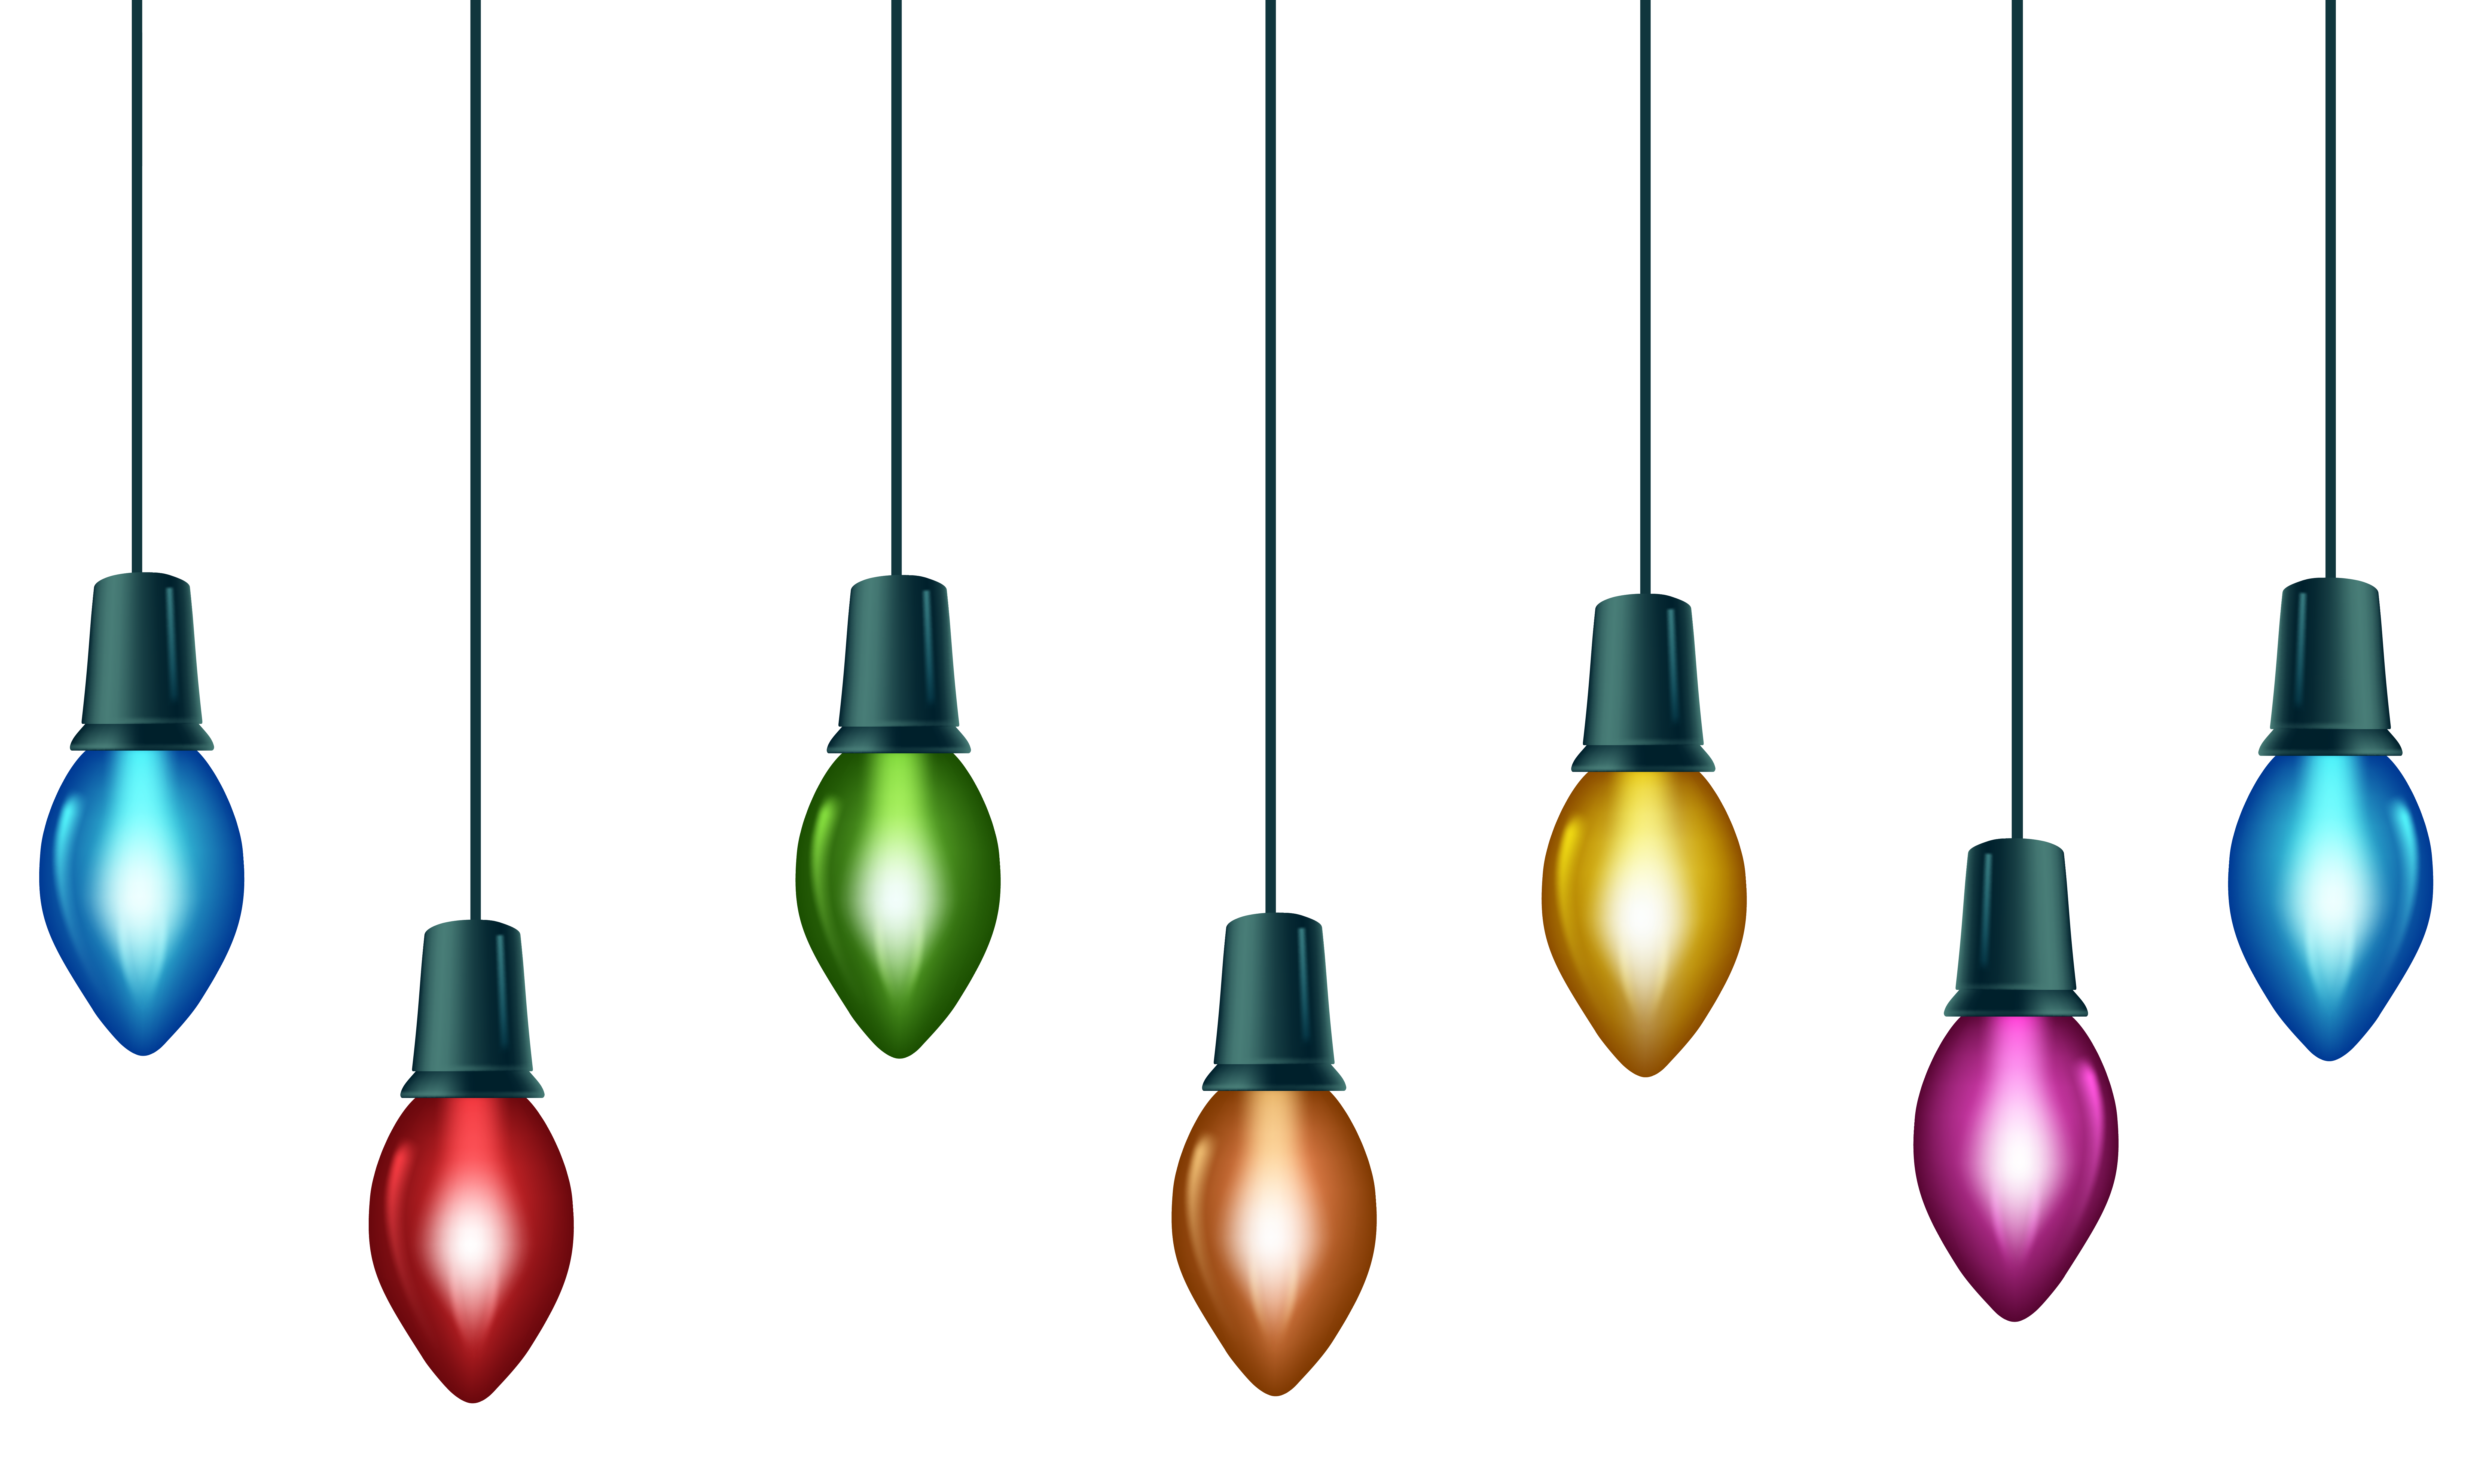 Christmas light string png. Bulb clipart at getdrawings